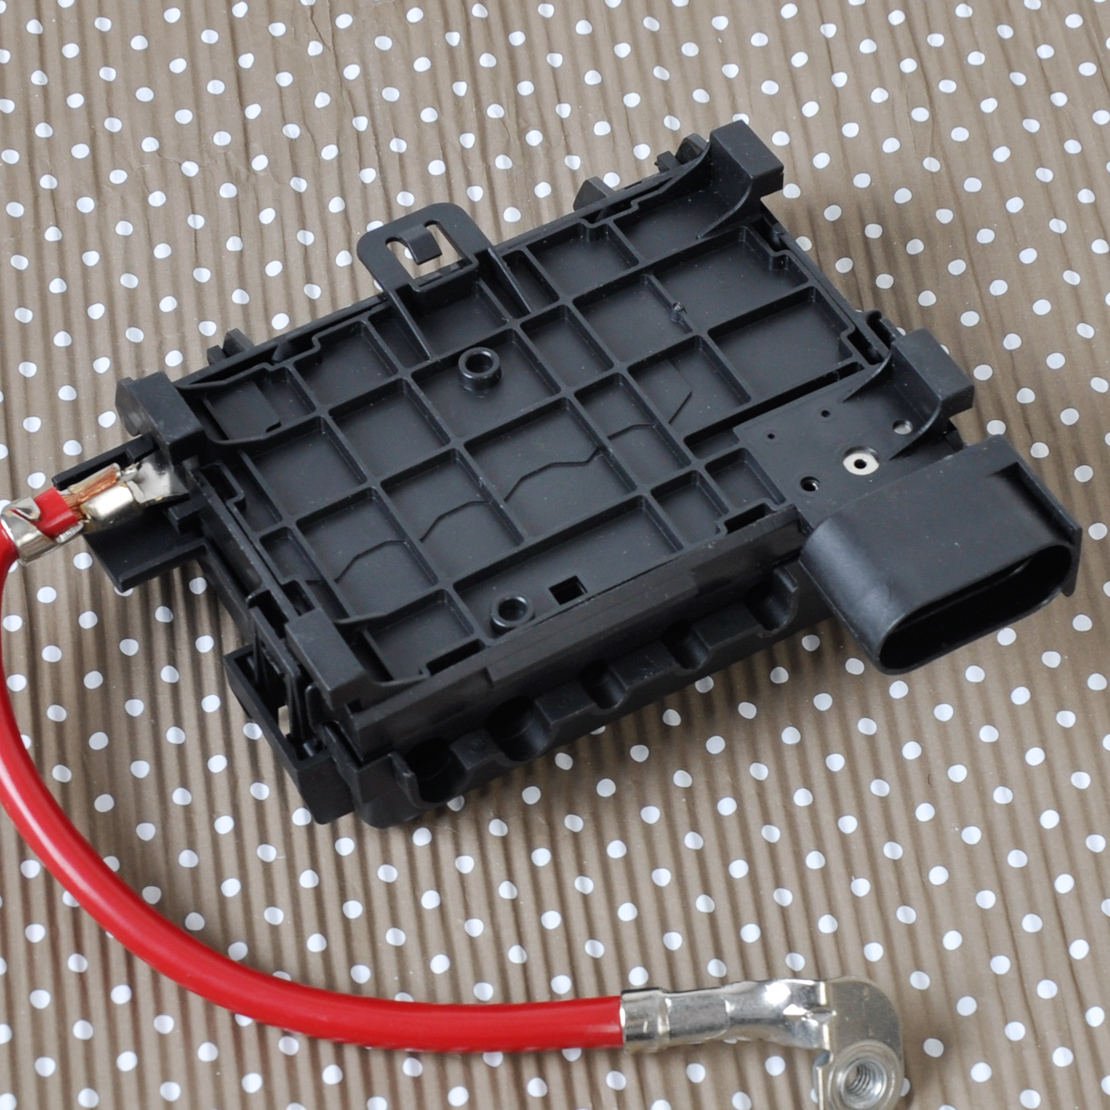 1 fuse box battery terminal for vw beetle golf bora jetta city Battery Terminal Fuse Holder at honlapkeszites.co